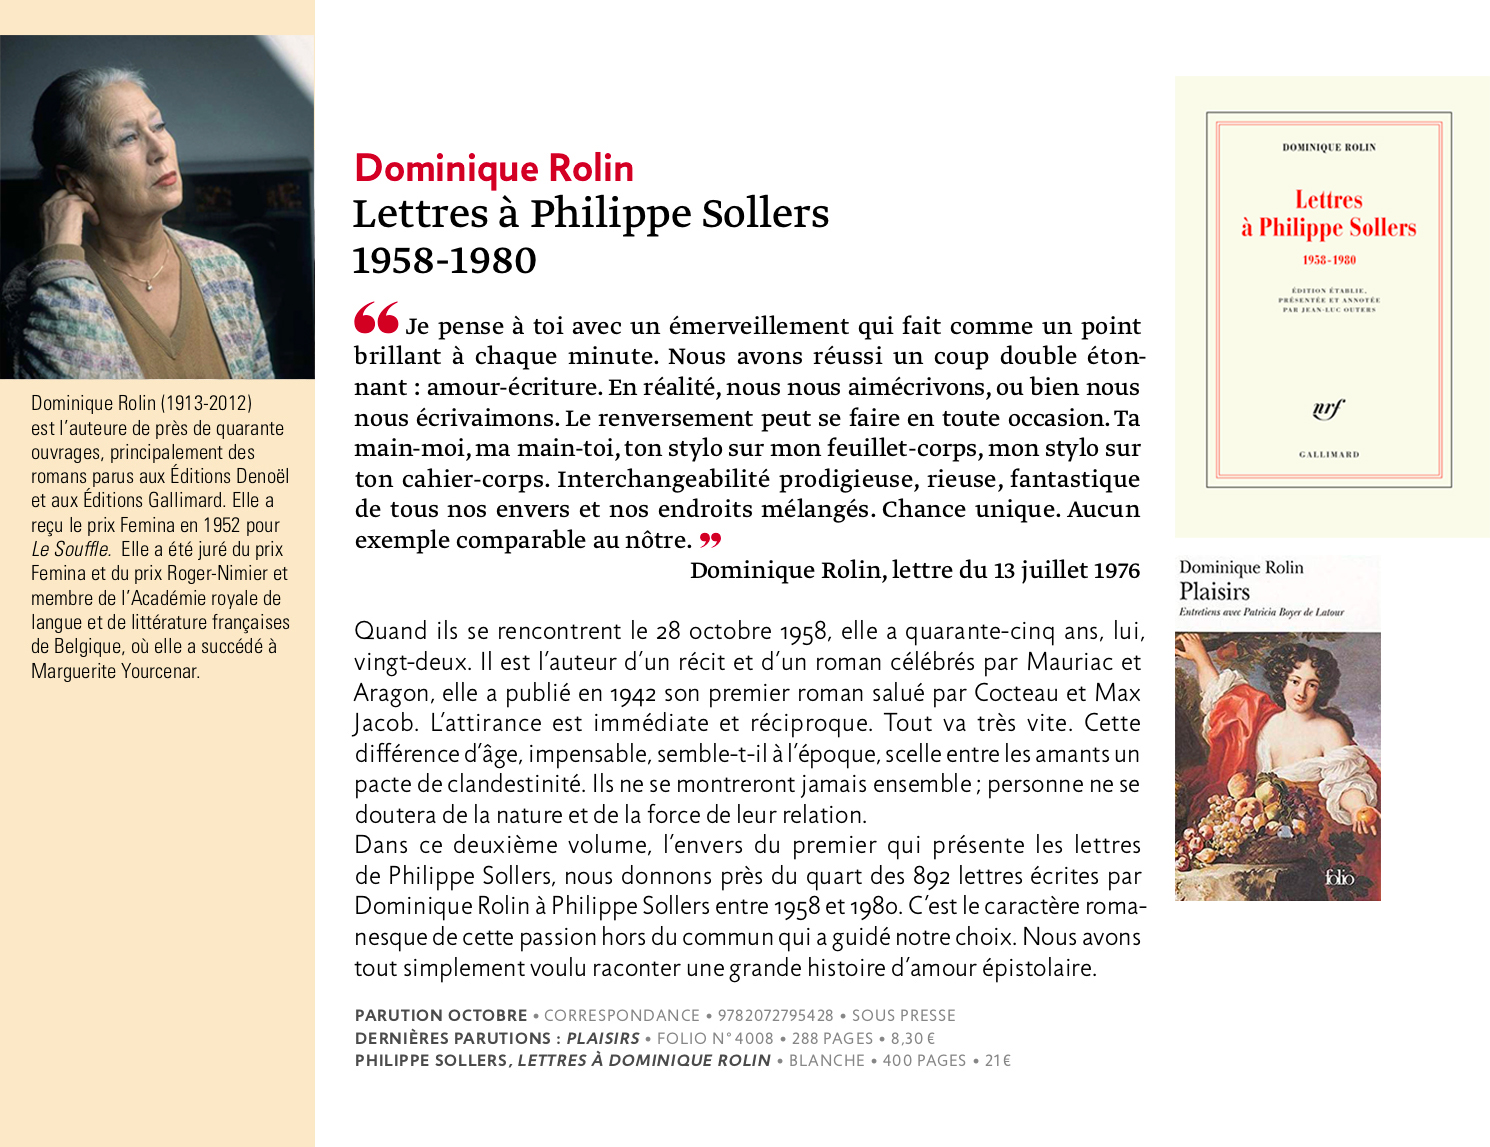 Dominique Rolin, lettres à Philippe Sollers